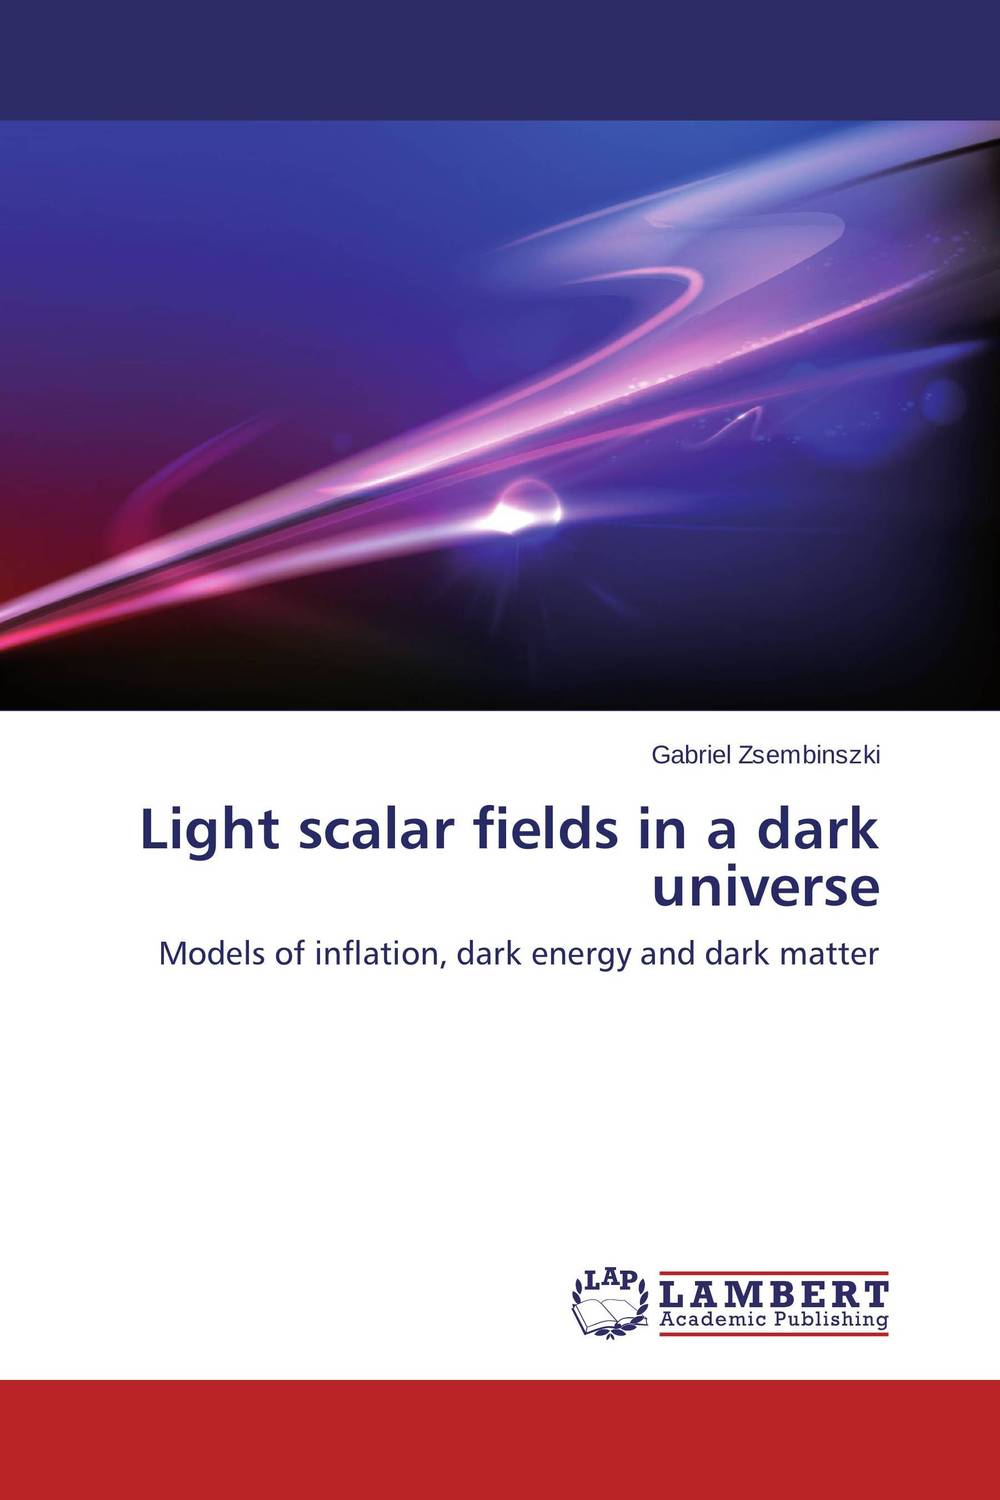 Light scalar fields in a dark universe arcade ndoricimpa inflation output growth and their uncertainties in south africa empirical evidence from an asymmetric multivariate garch m model